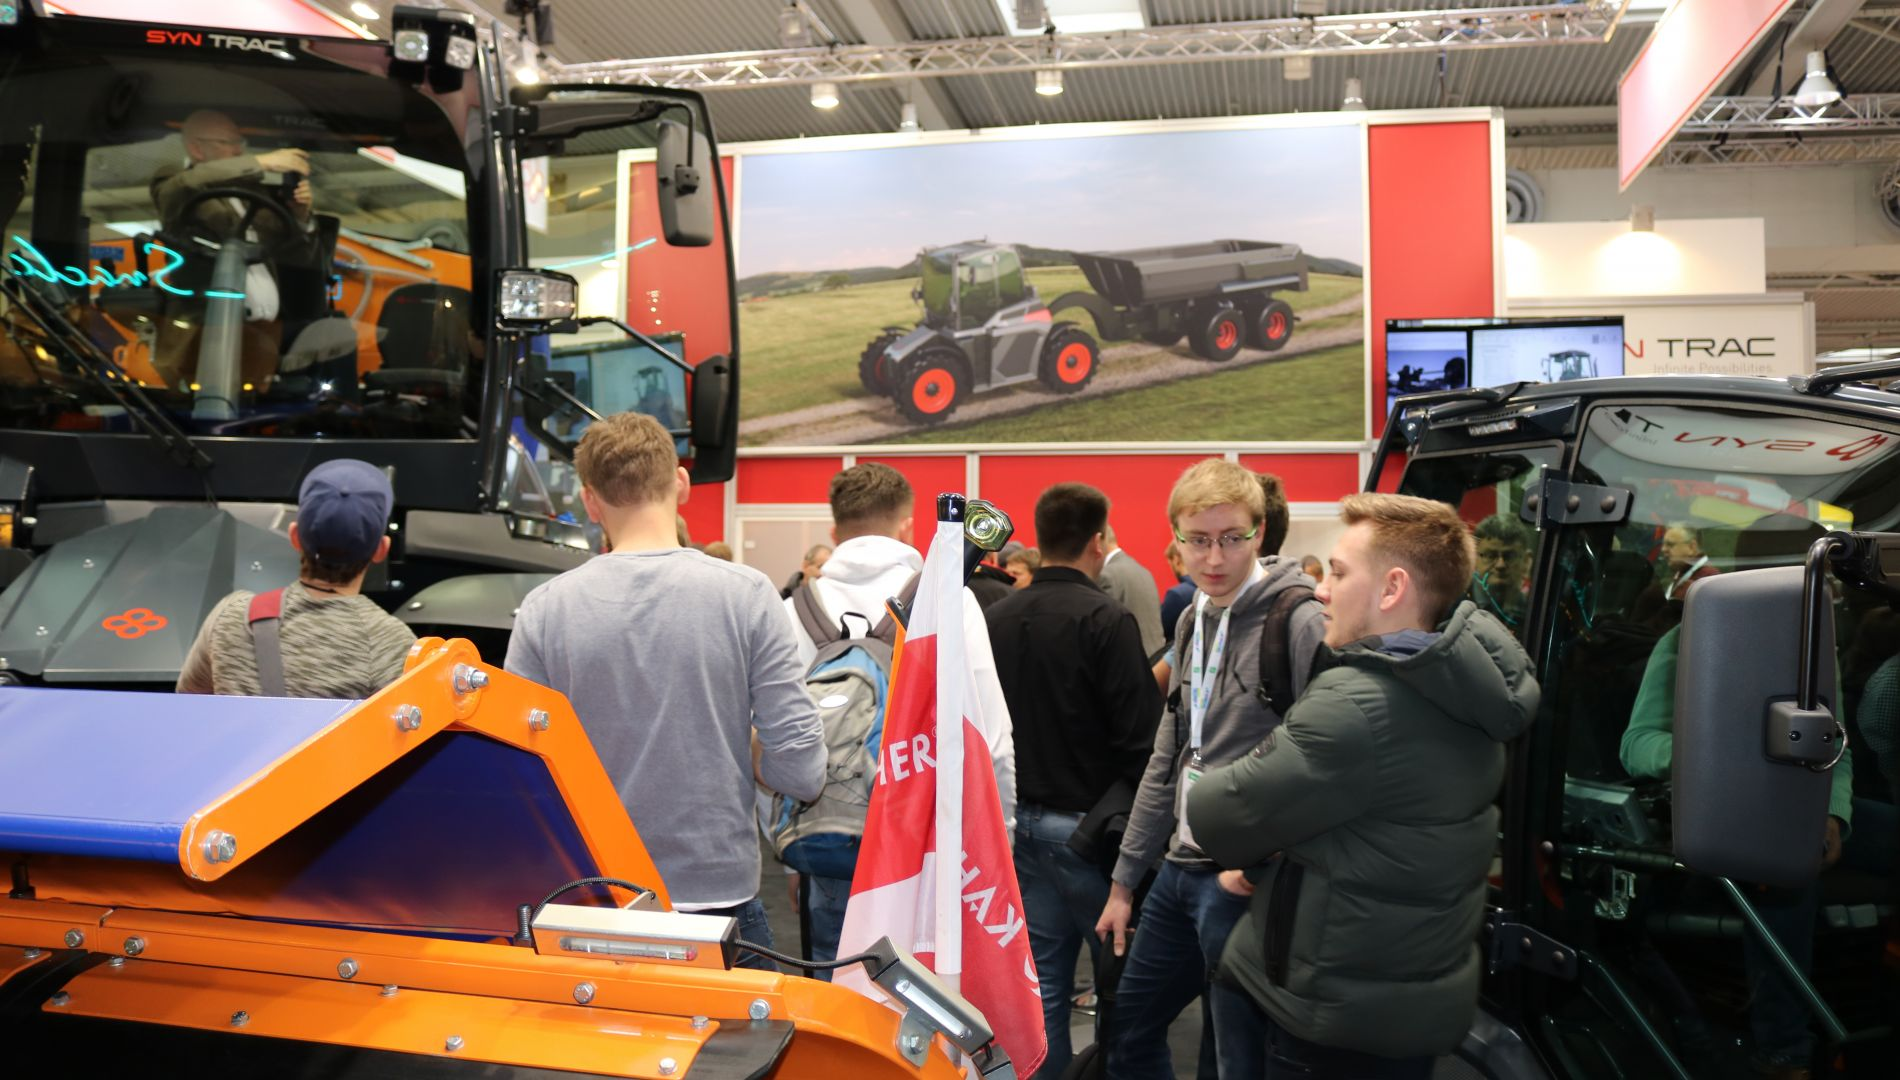 SYN TRAC - Agritechnica 2017_image3